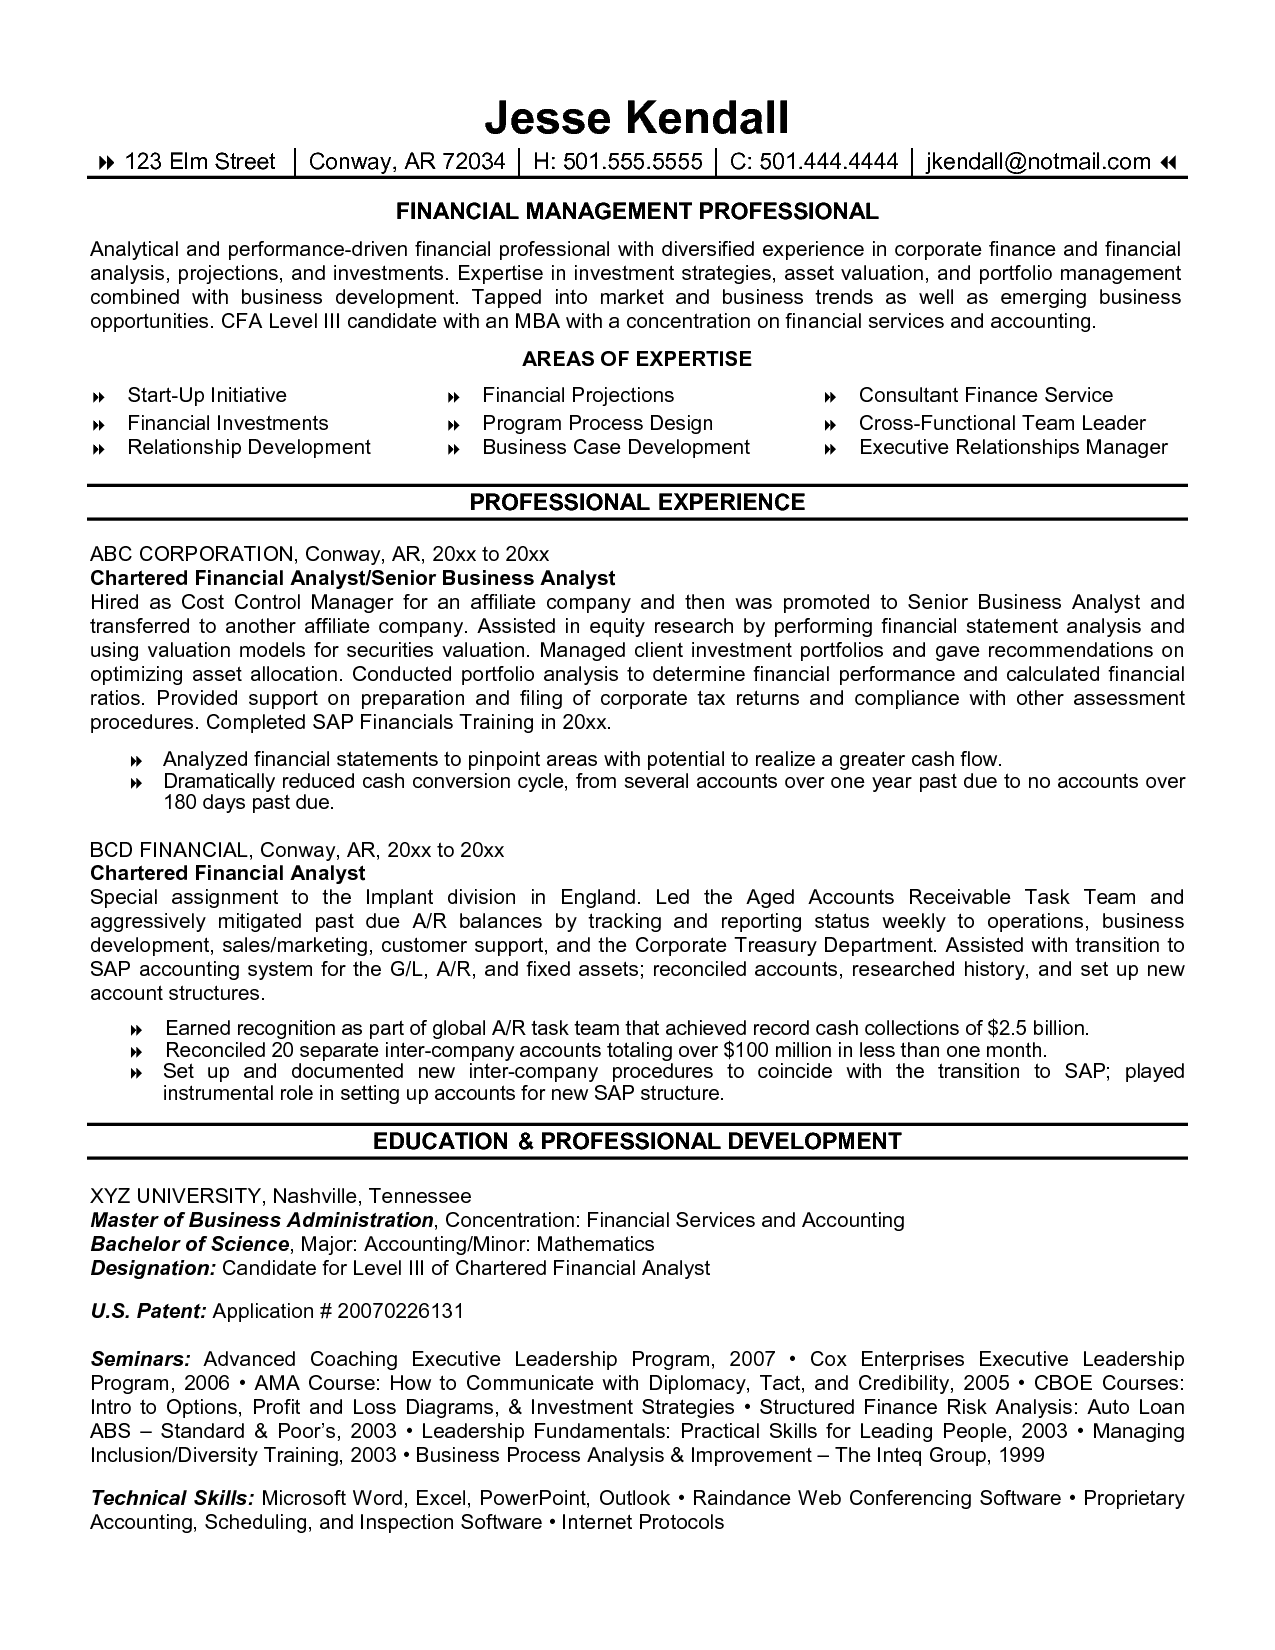 Resume Financial Management Professional Analyst